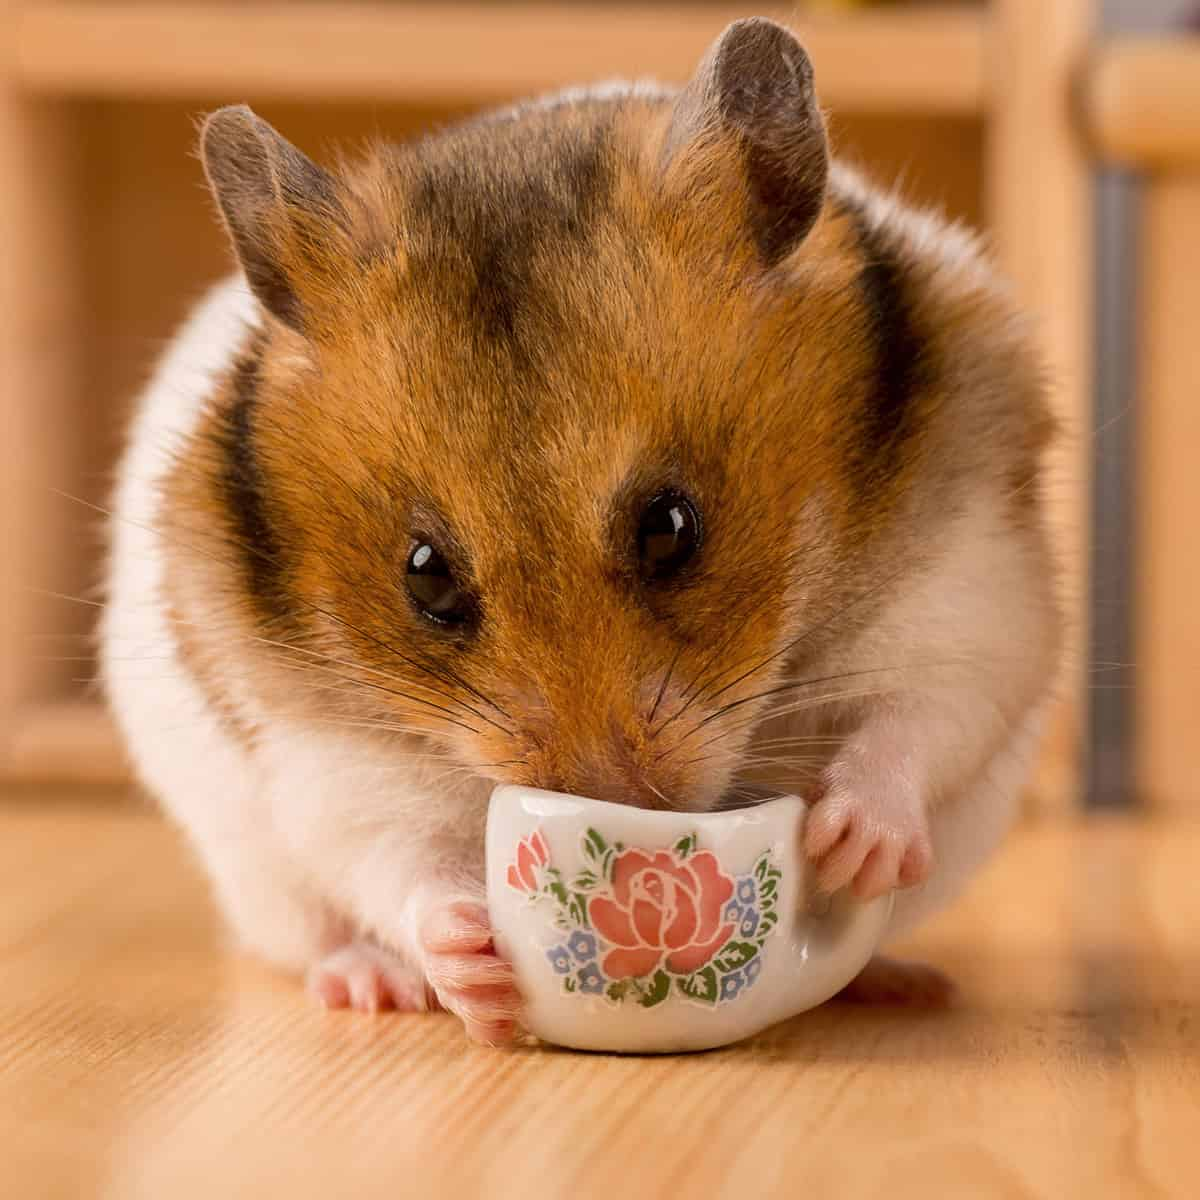 A cute hamster drinking coffee on a small mug